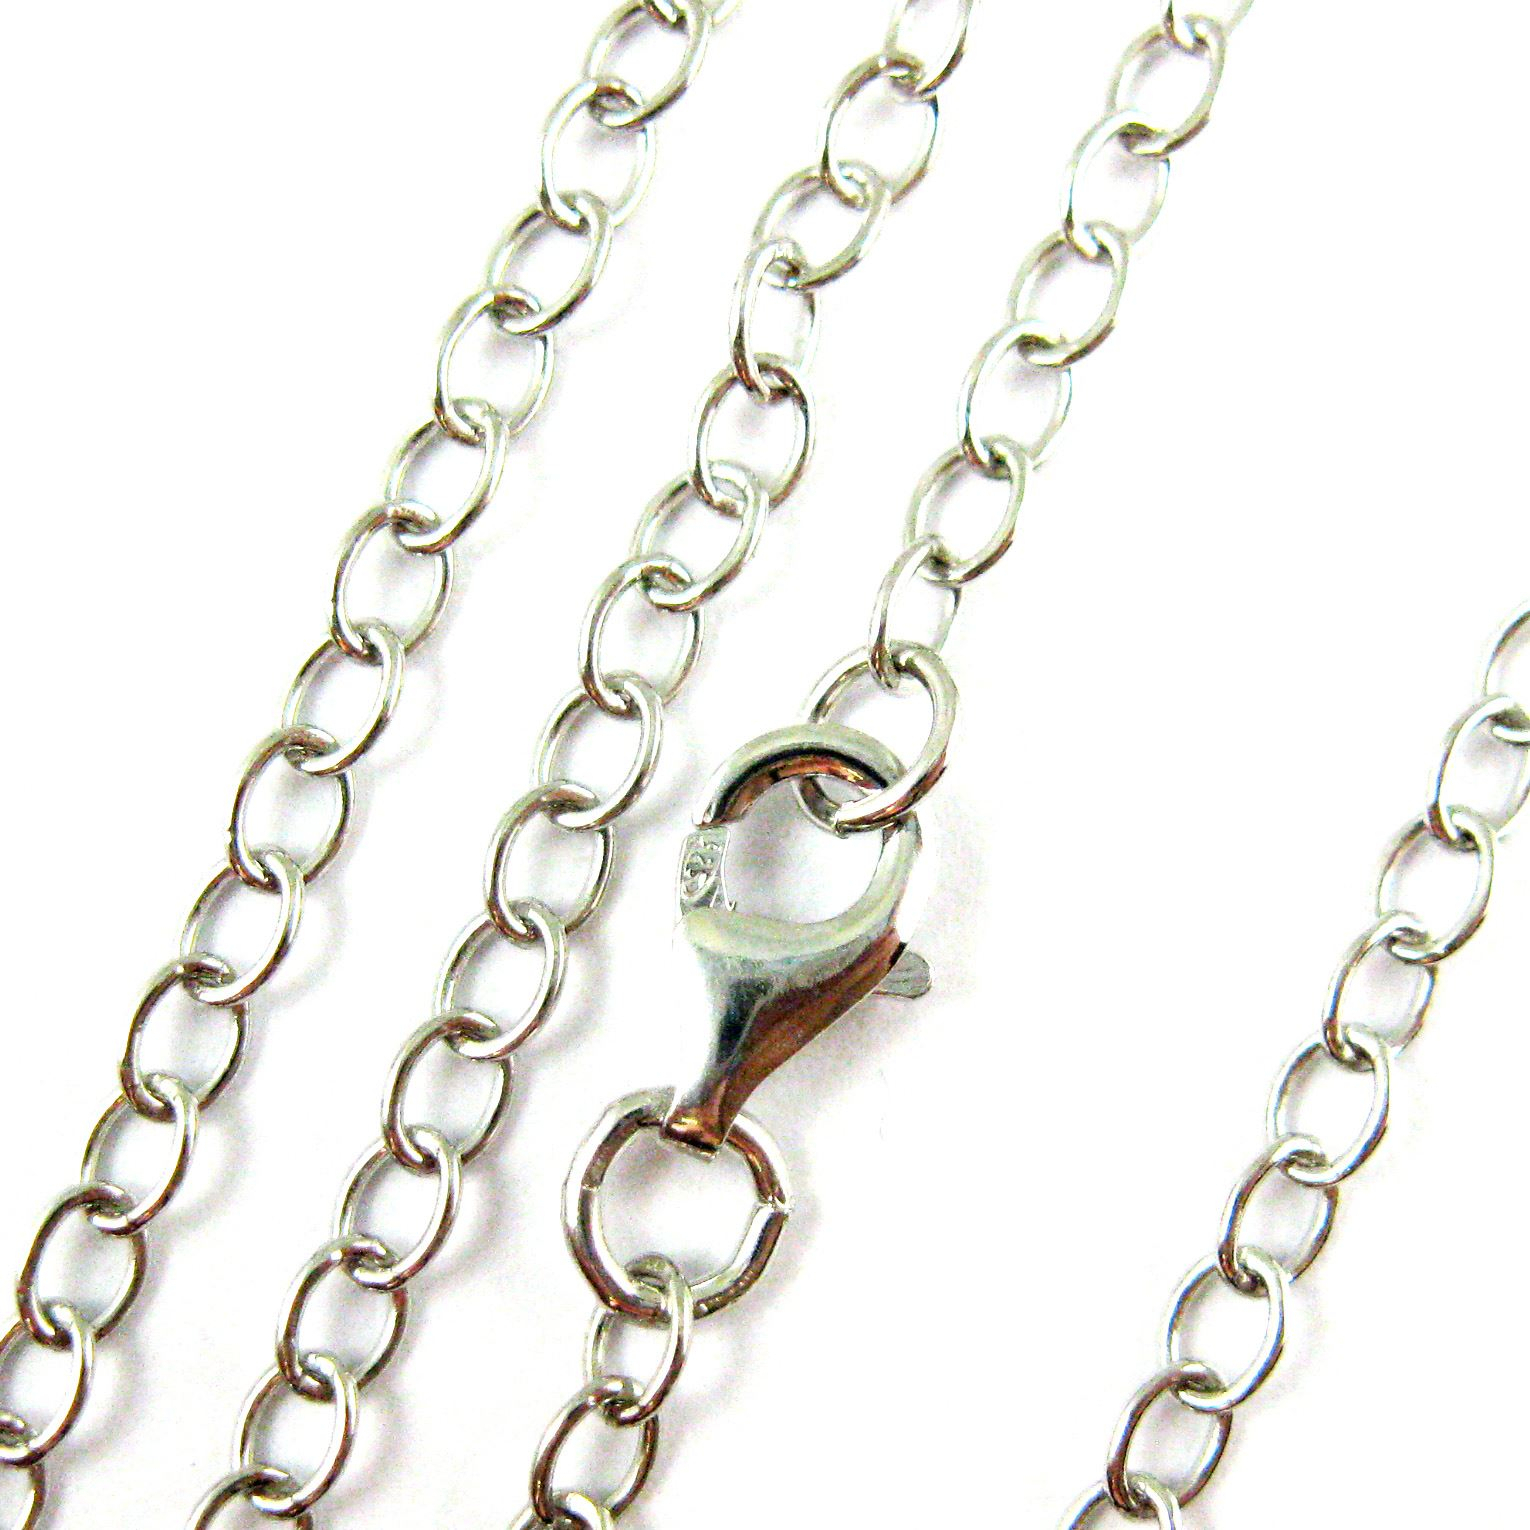 Rhodium Plated Over Of Sterling Silver Chain Necklace – Rhodium Bracelet,  Anklet – 4Mm Cable Chain Necklace – 4Mm Strong Cable Chain  All Sizes Regarding 2020 Classic Cable Chain Necklaces (Gallery 20 of 25)